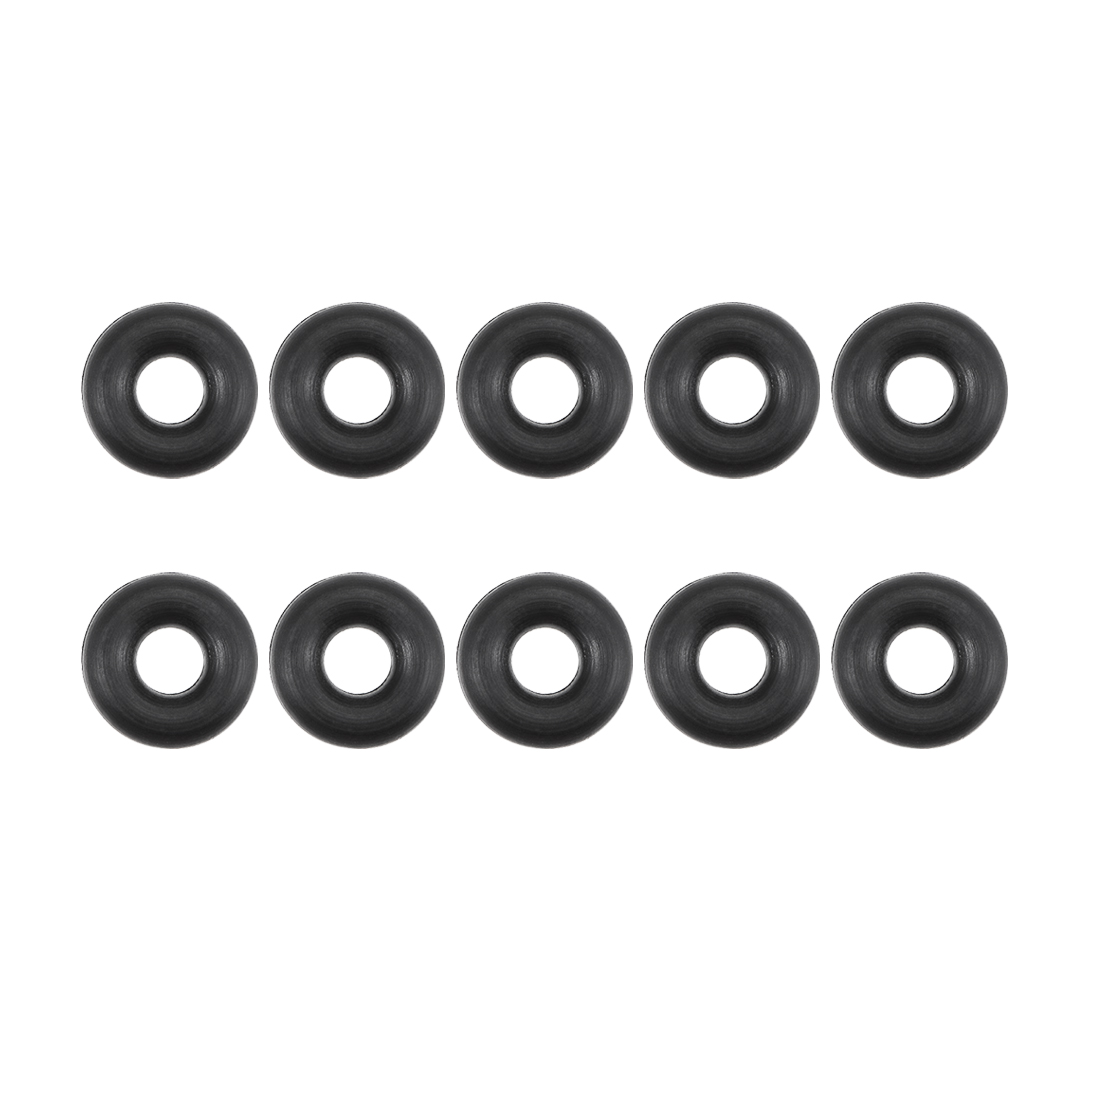 10 RUBBER WASHERS 18MM DIAMETER  WITH A 4MM HOLE 3MM THICK